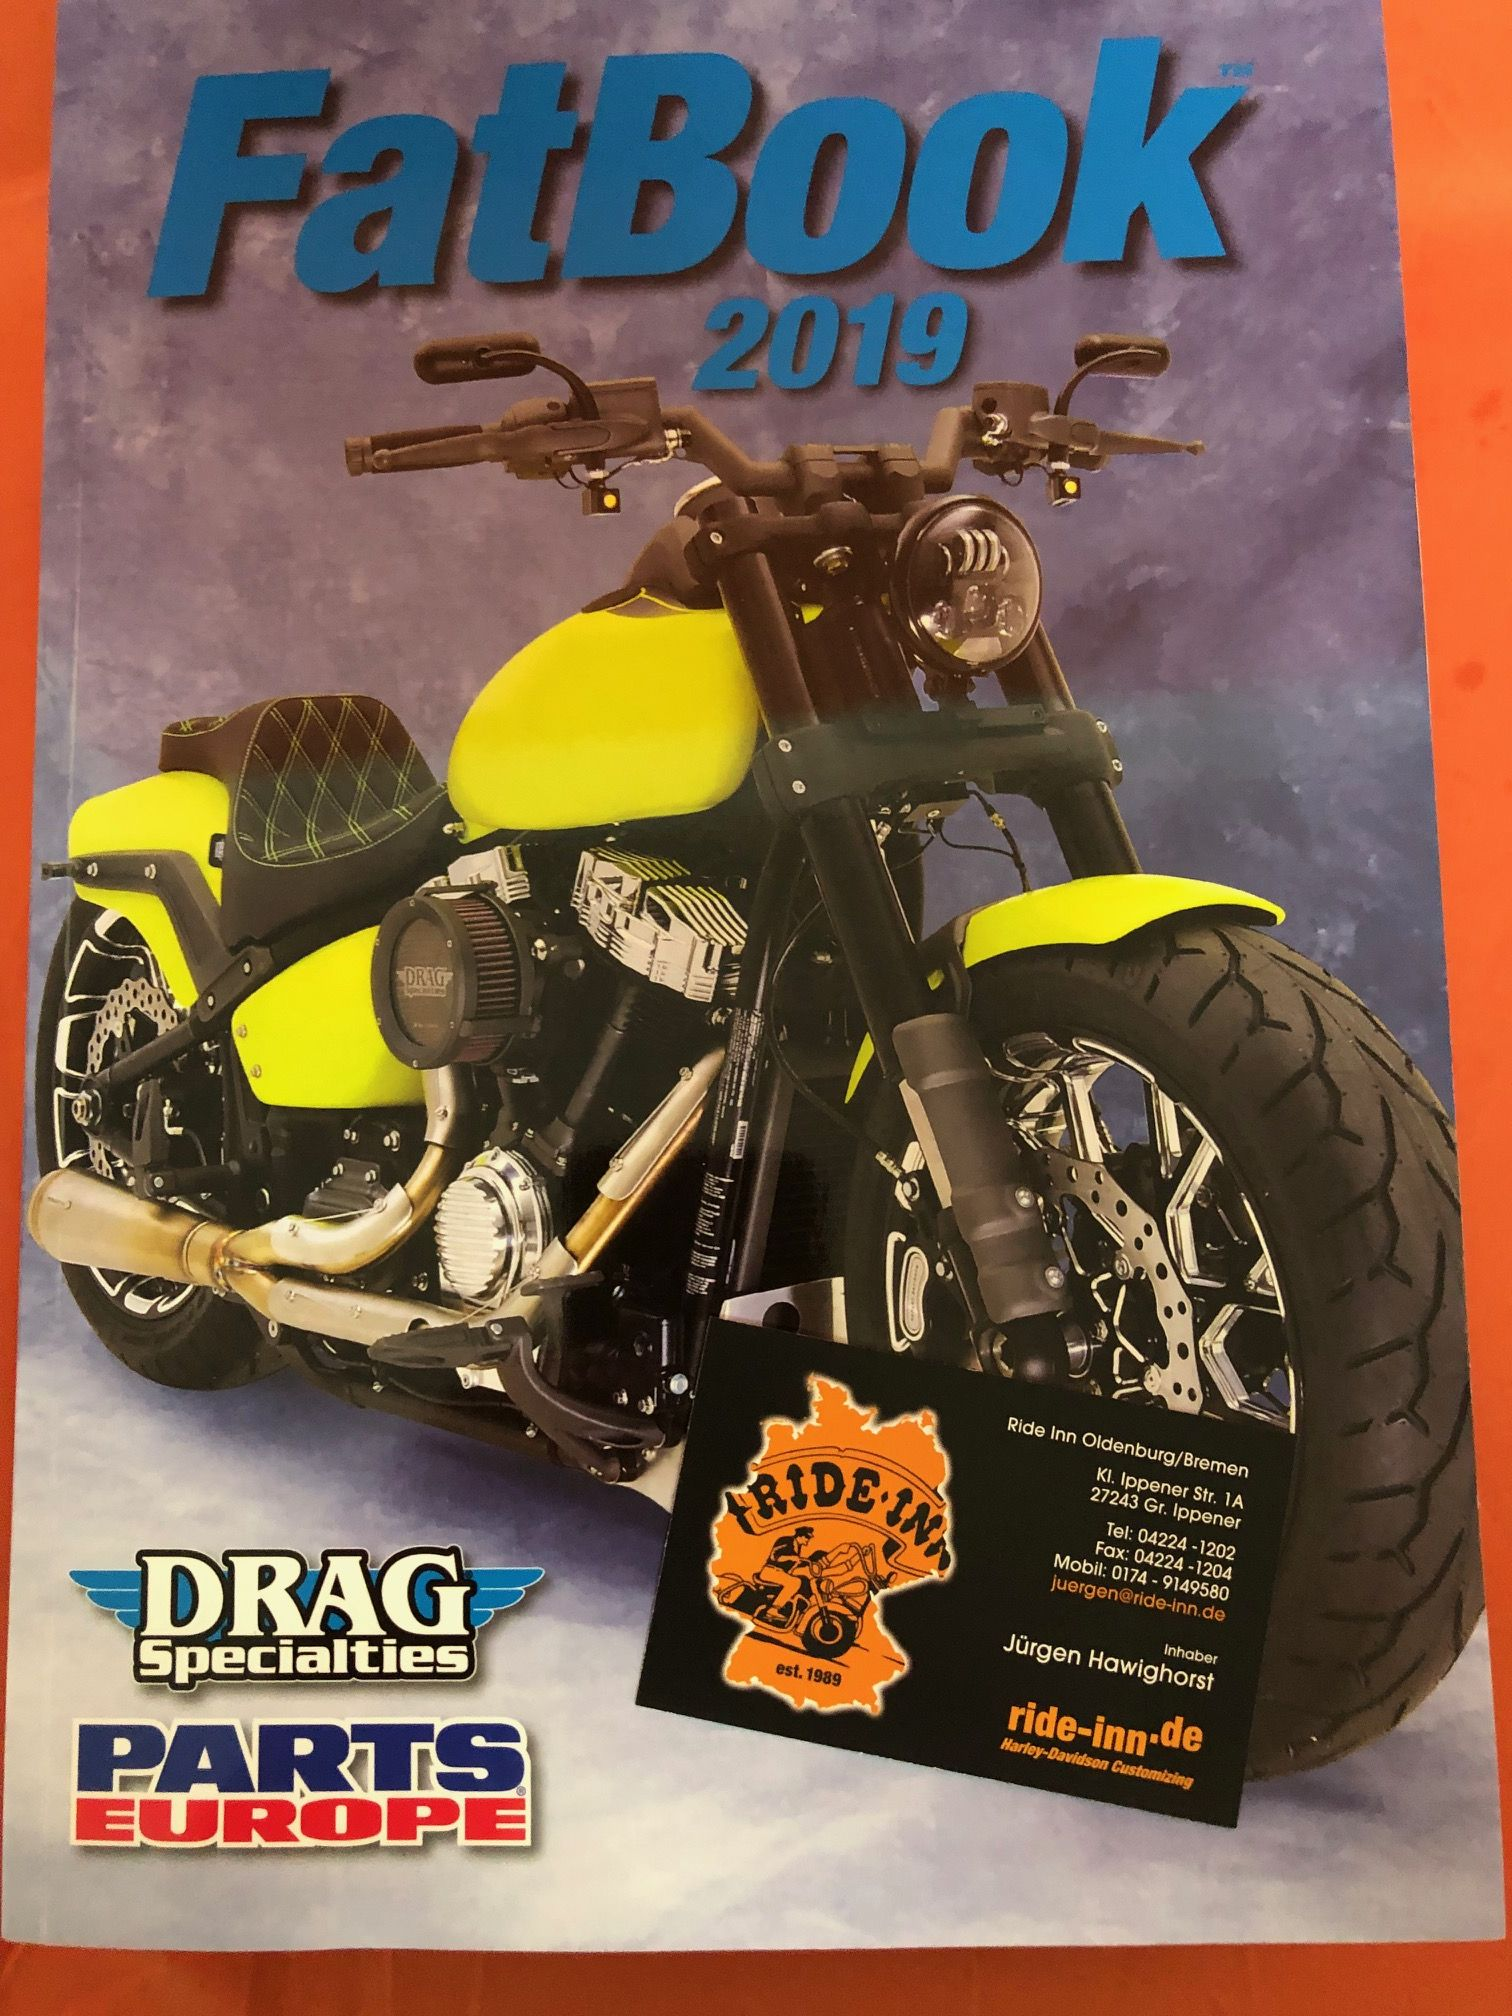 Katalog Drag Specialties parts Europe 2019